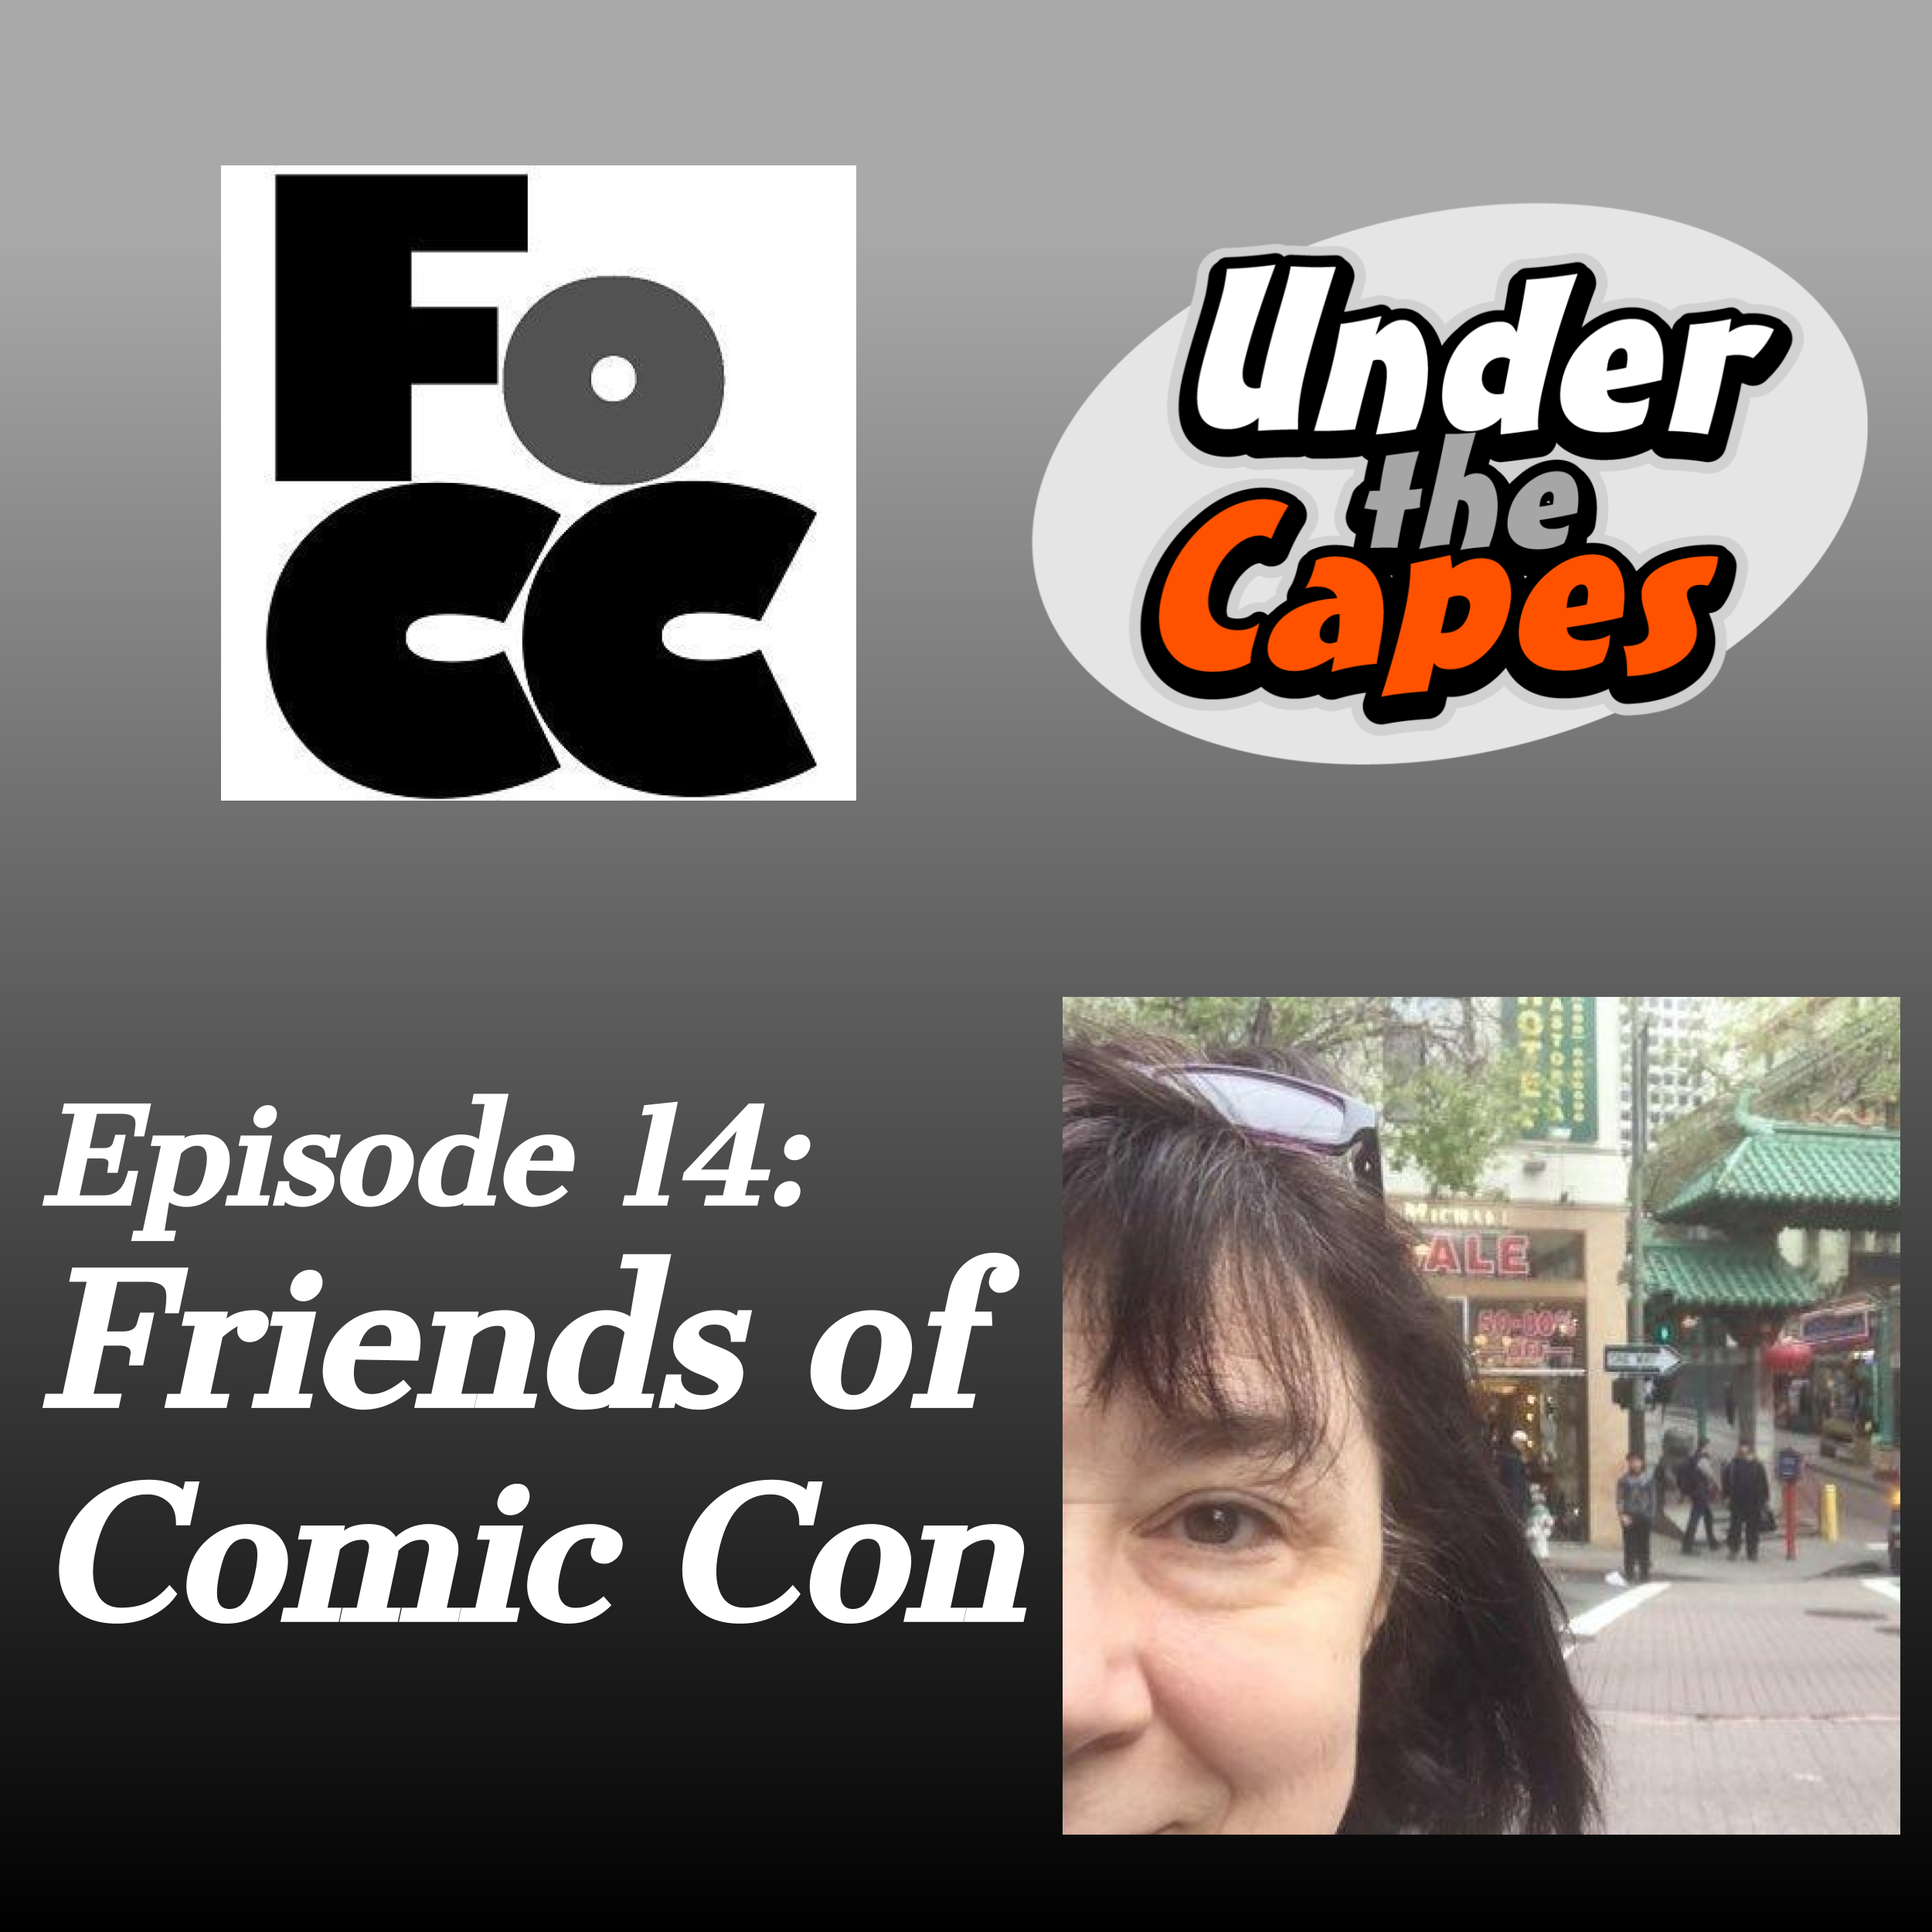 Episode 14: Friends of Comic Con